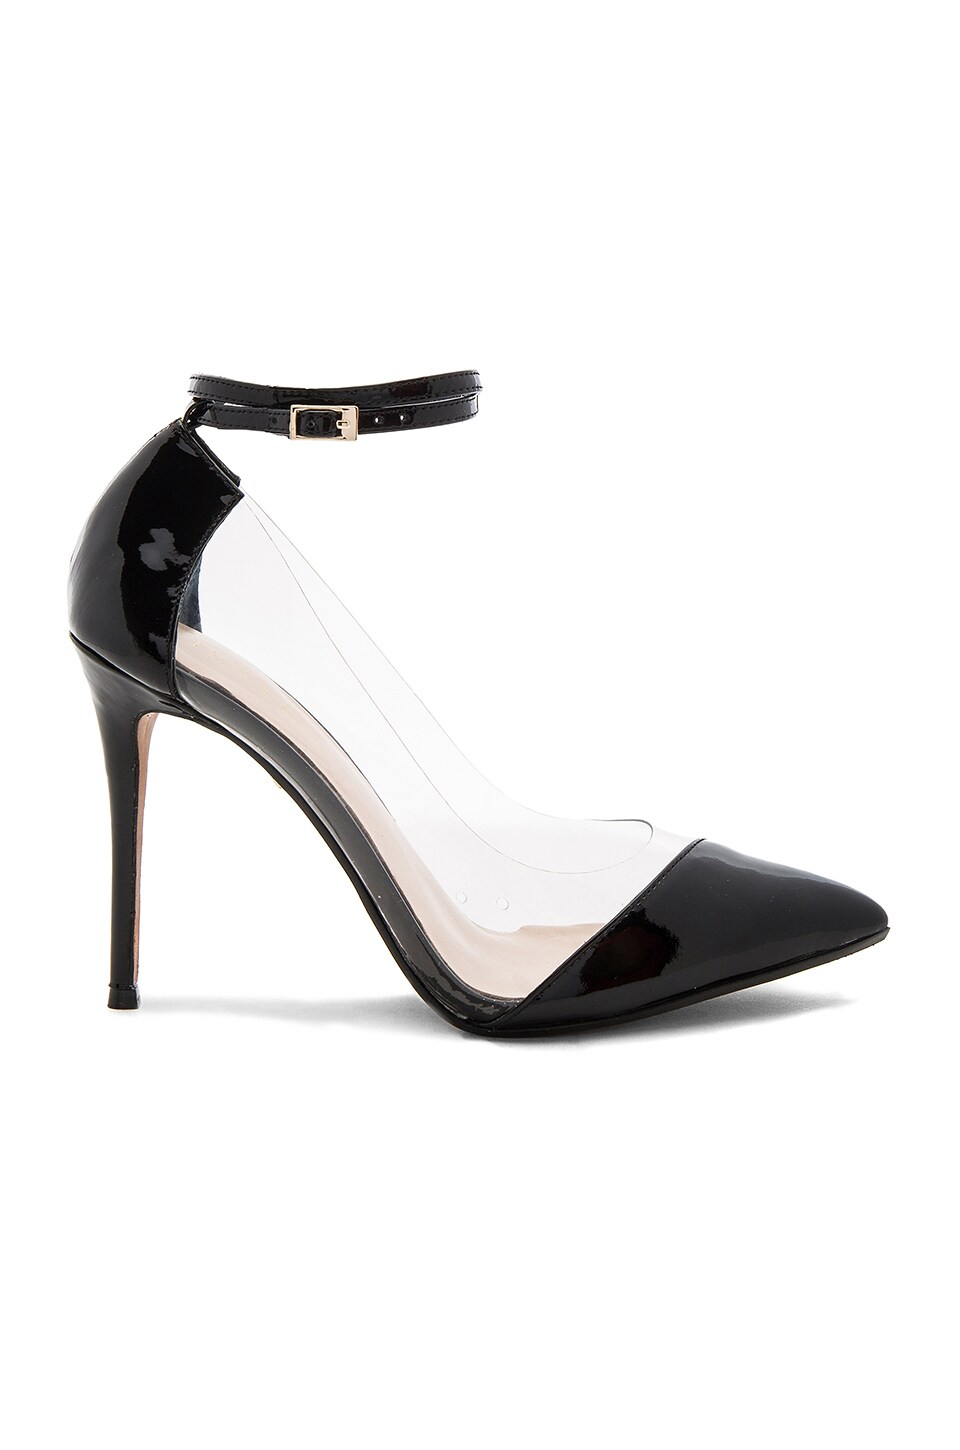 RAYE Tara Pump in Black